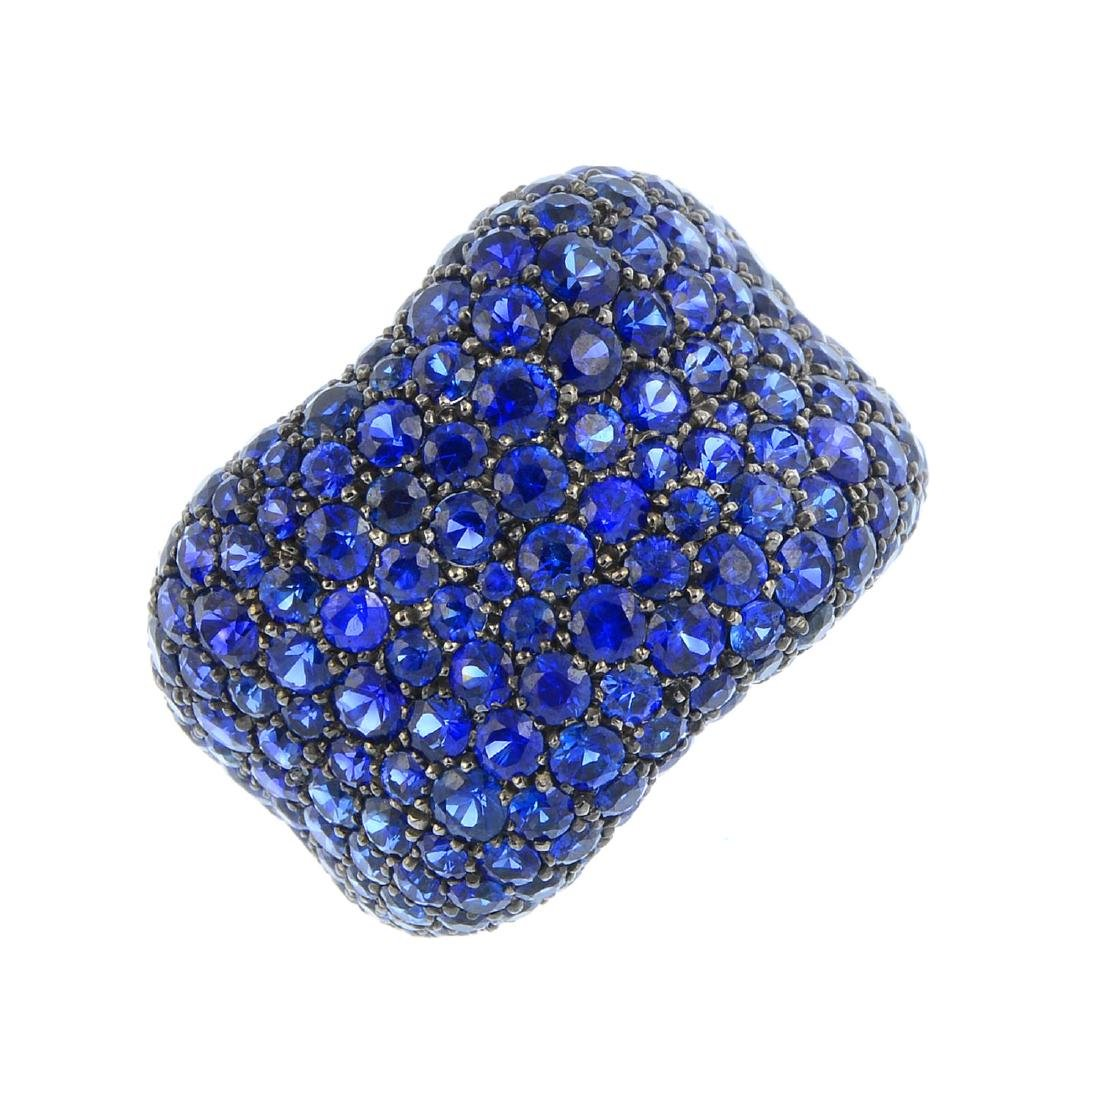 FABERGE - an 18ct gold sapphire 'Emotion' ring.